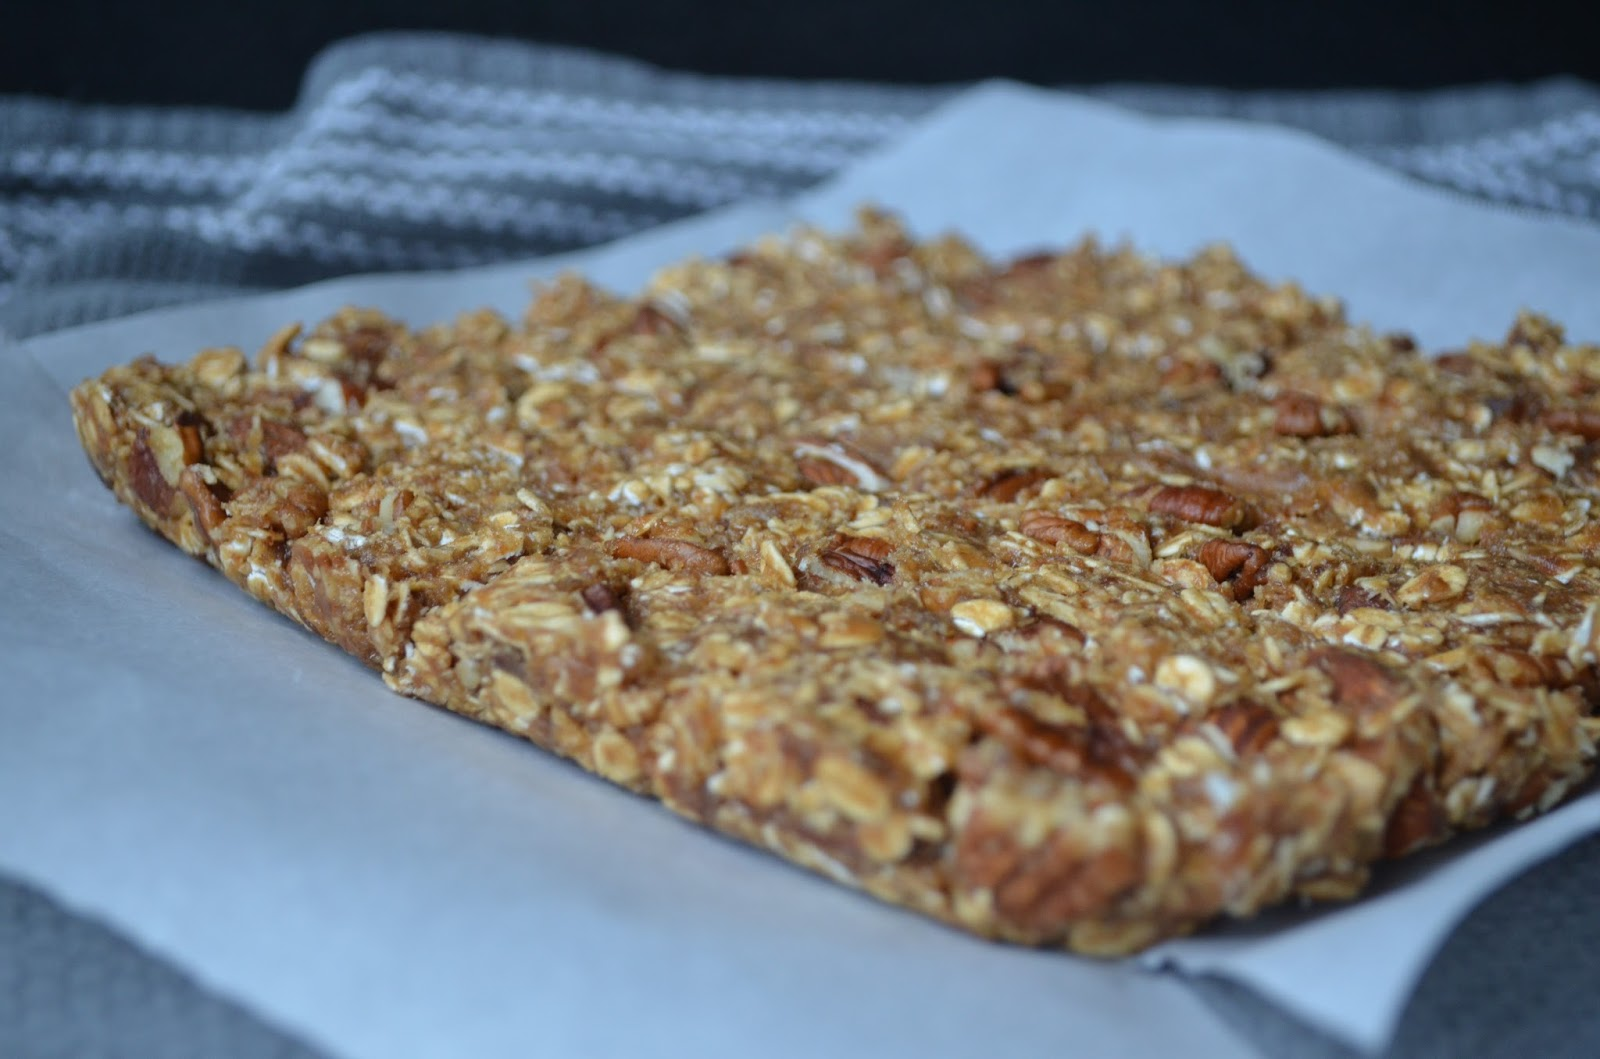 Petite Panettiere: Quick & Easy No-Bake Granola Bars